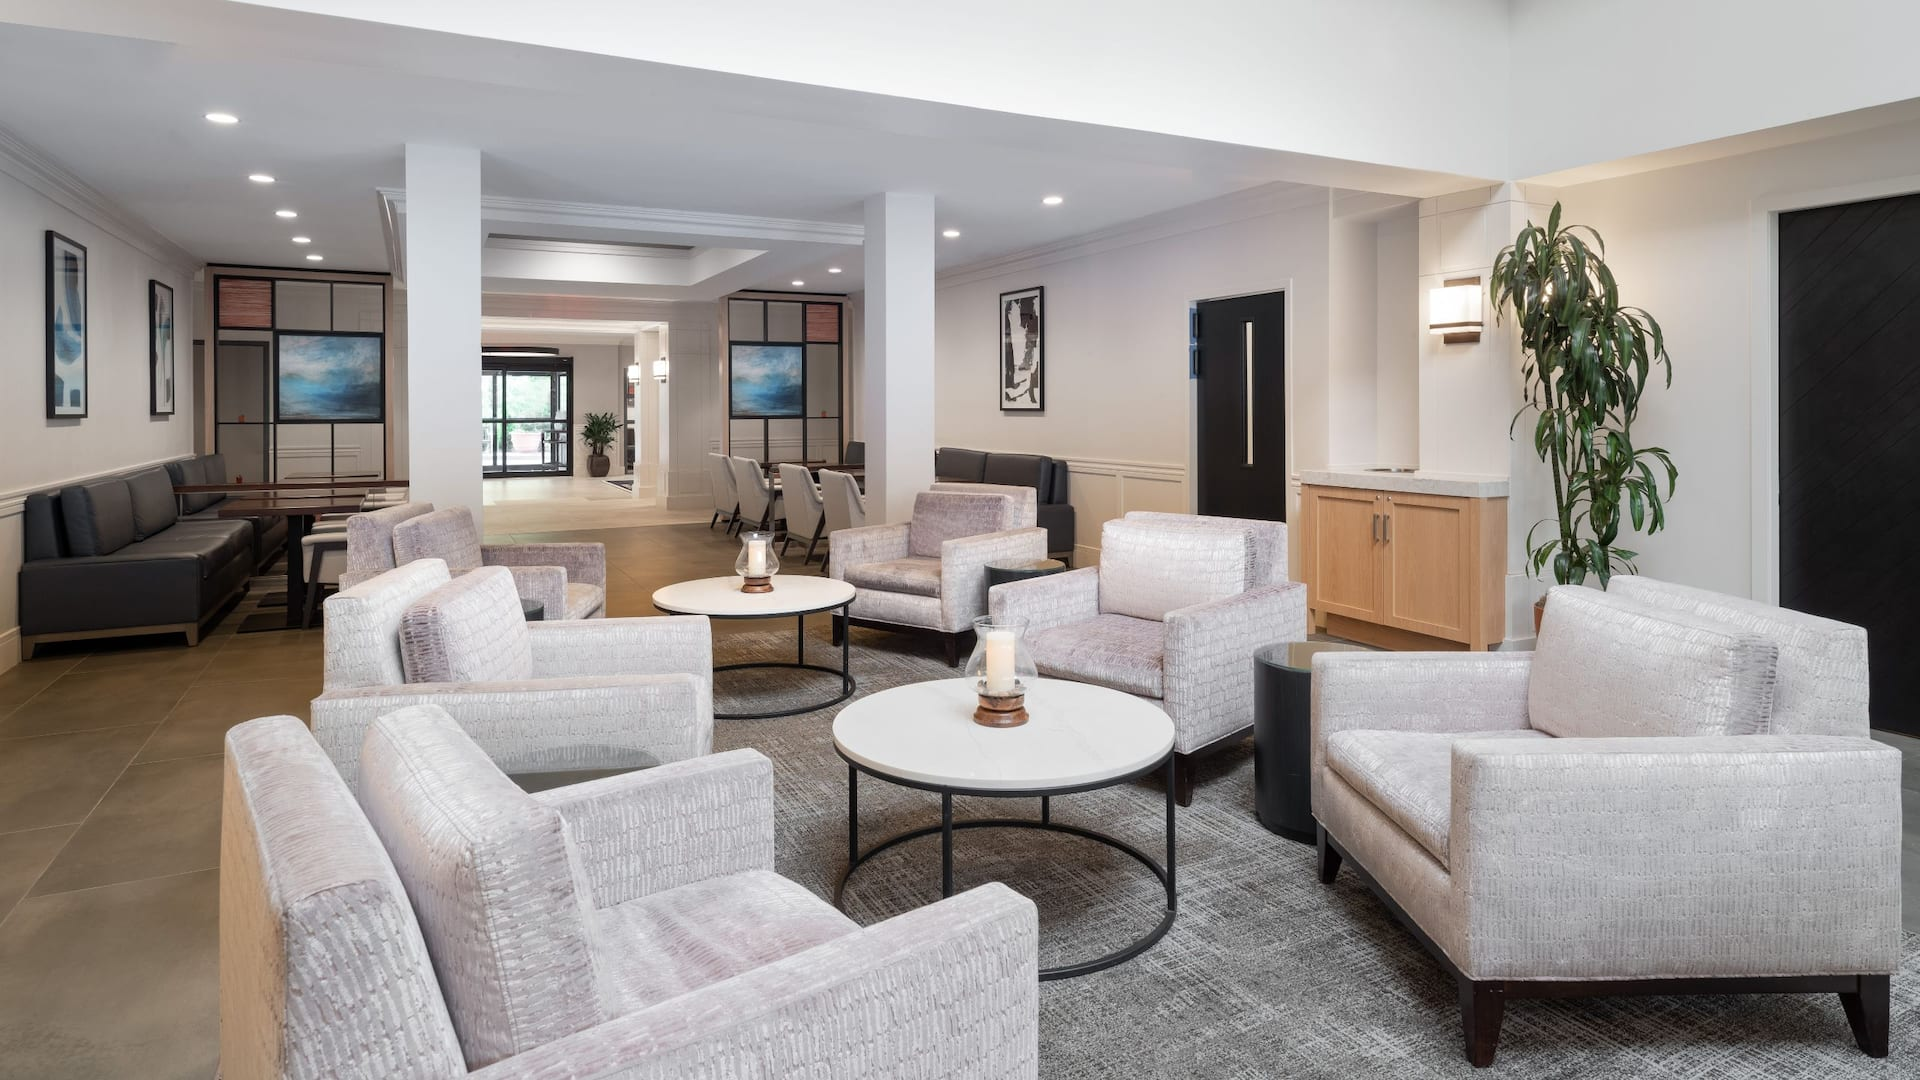 Hyatt House White Plains Common Area Seating